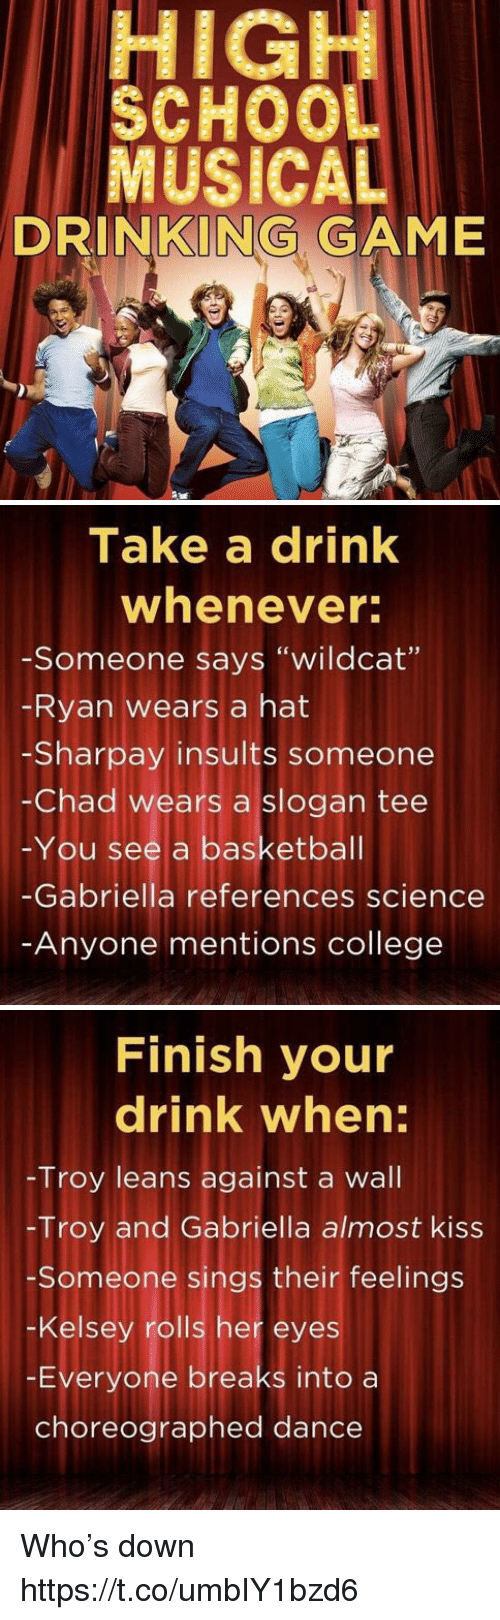 "College, Drinking, and Game: HIGH  SCHOO  MUSICAL  DRINKING GAME   Take a drink  whenever  -Someone says ""wildcat""  Ryan wears a hat  -Sharpay insults someone  -Chad wears a slogan tee  -You see a basketbal  -Gabriella references science  Anyone mentions college   Finish your  drink when:  Troy leans against a wall  -Troy and Gabriella almost kiss  Someone sings their feelings  -Kelsey rolls her eyes  -Everyone breaks into a  choreographed dance Who's down https://t.co/umbIY1bzd6"